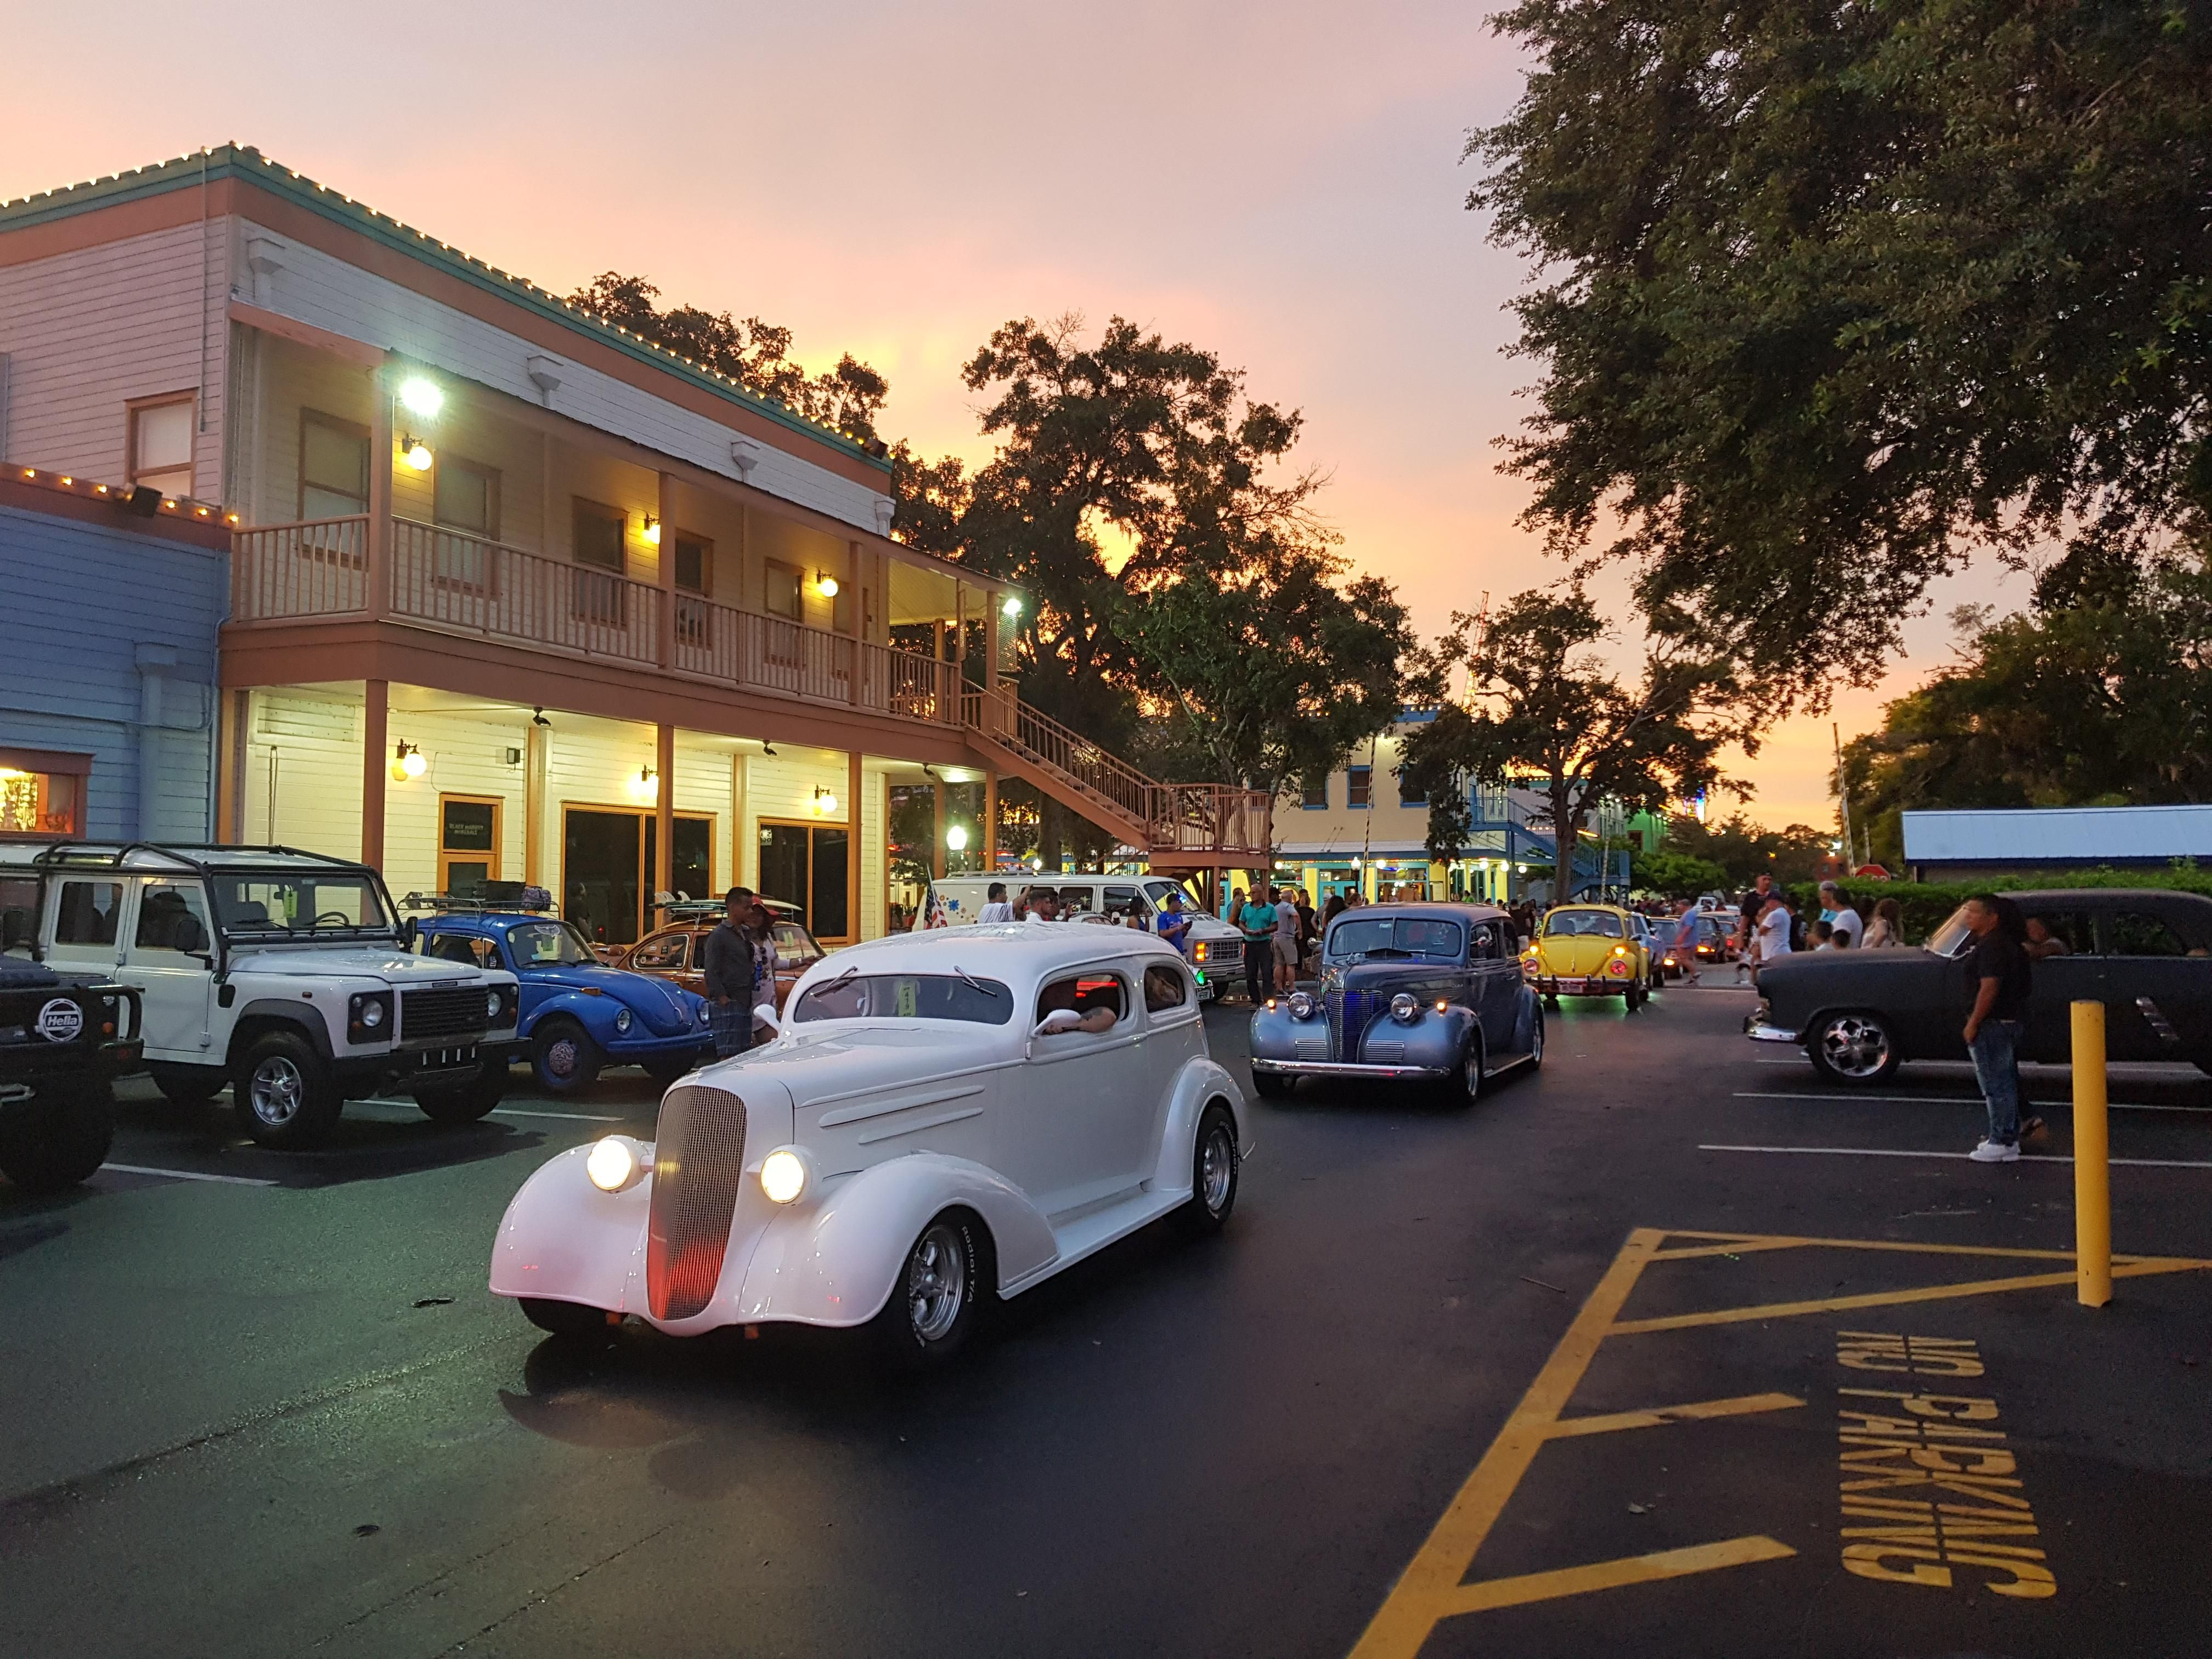 ITAP Of The Classic Car Show In Old Town Florida My Best - Old town florida car show